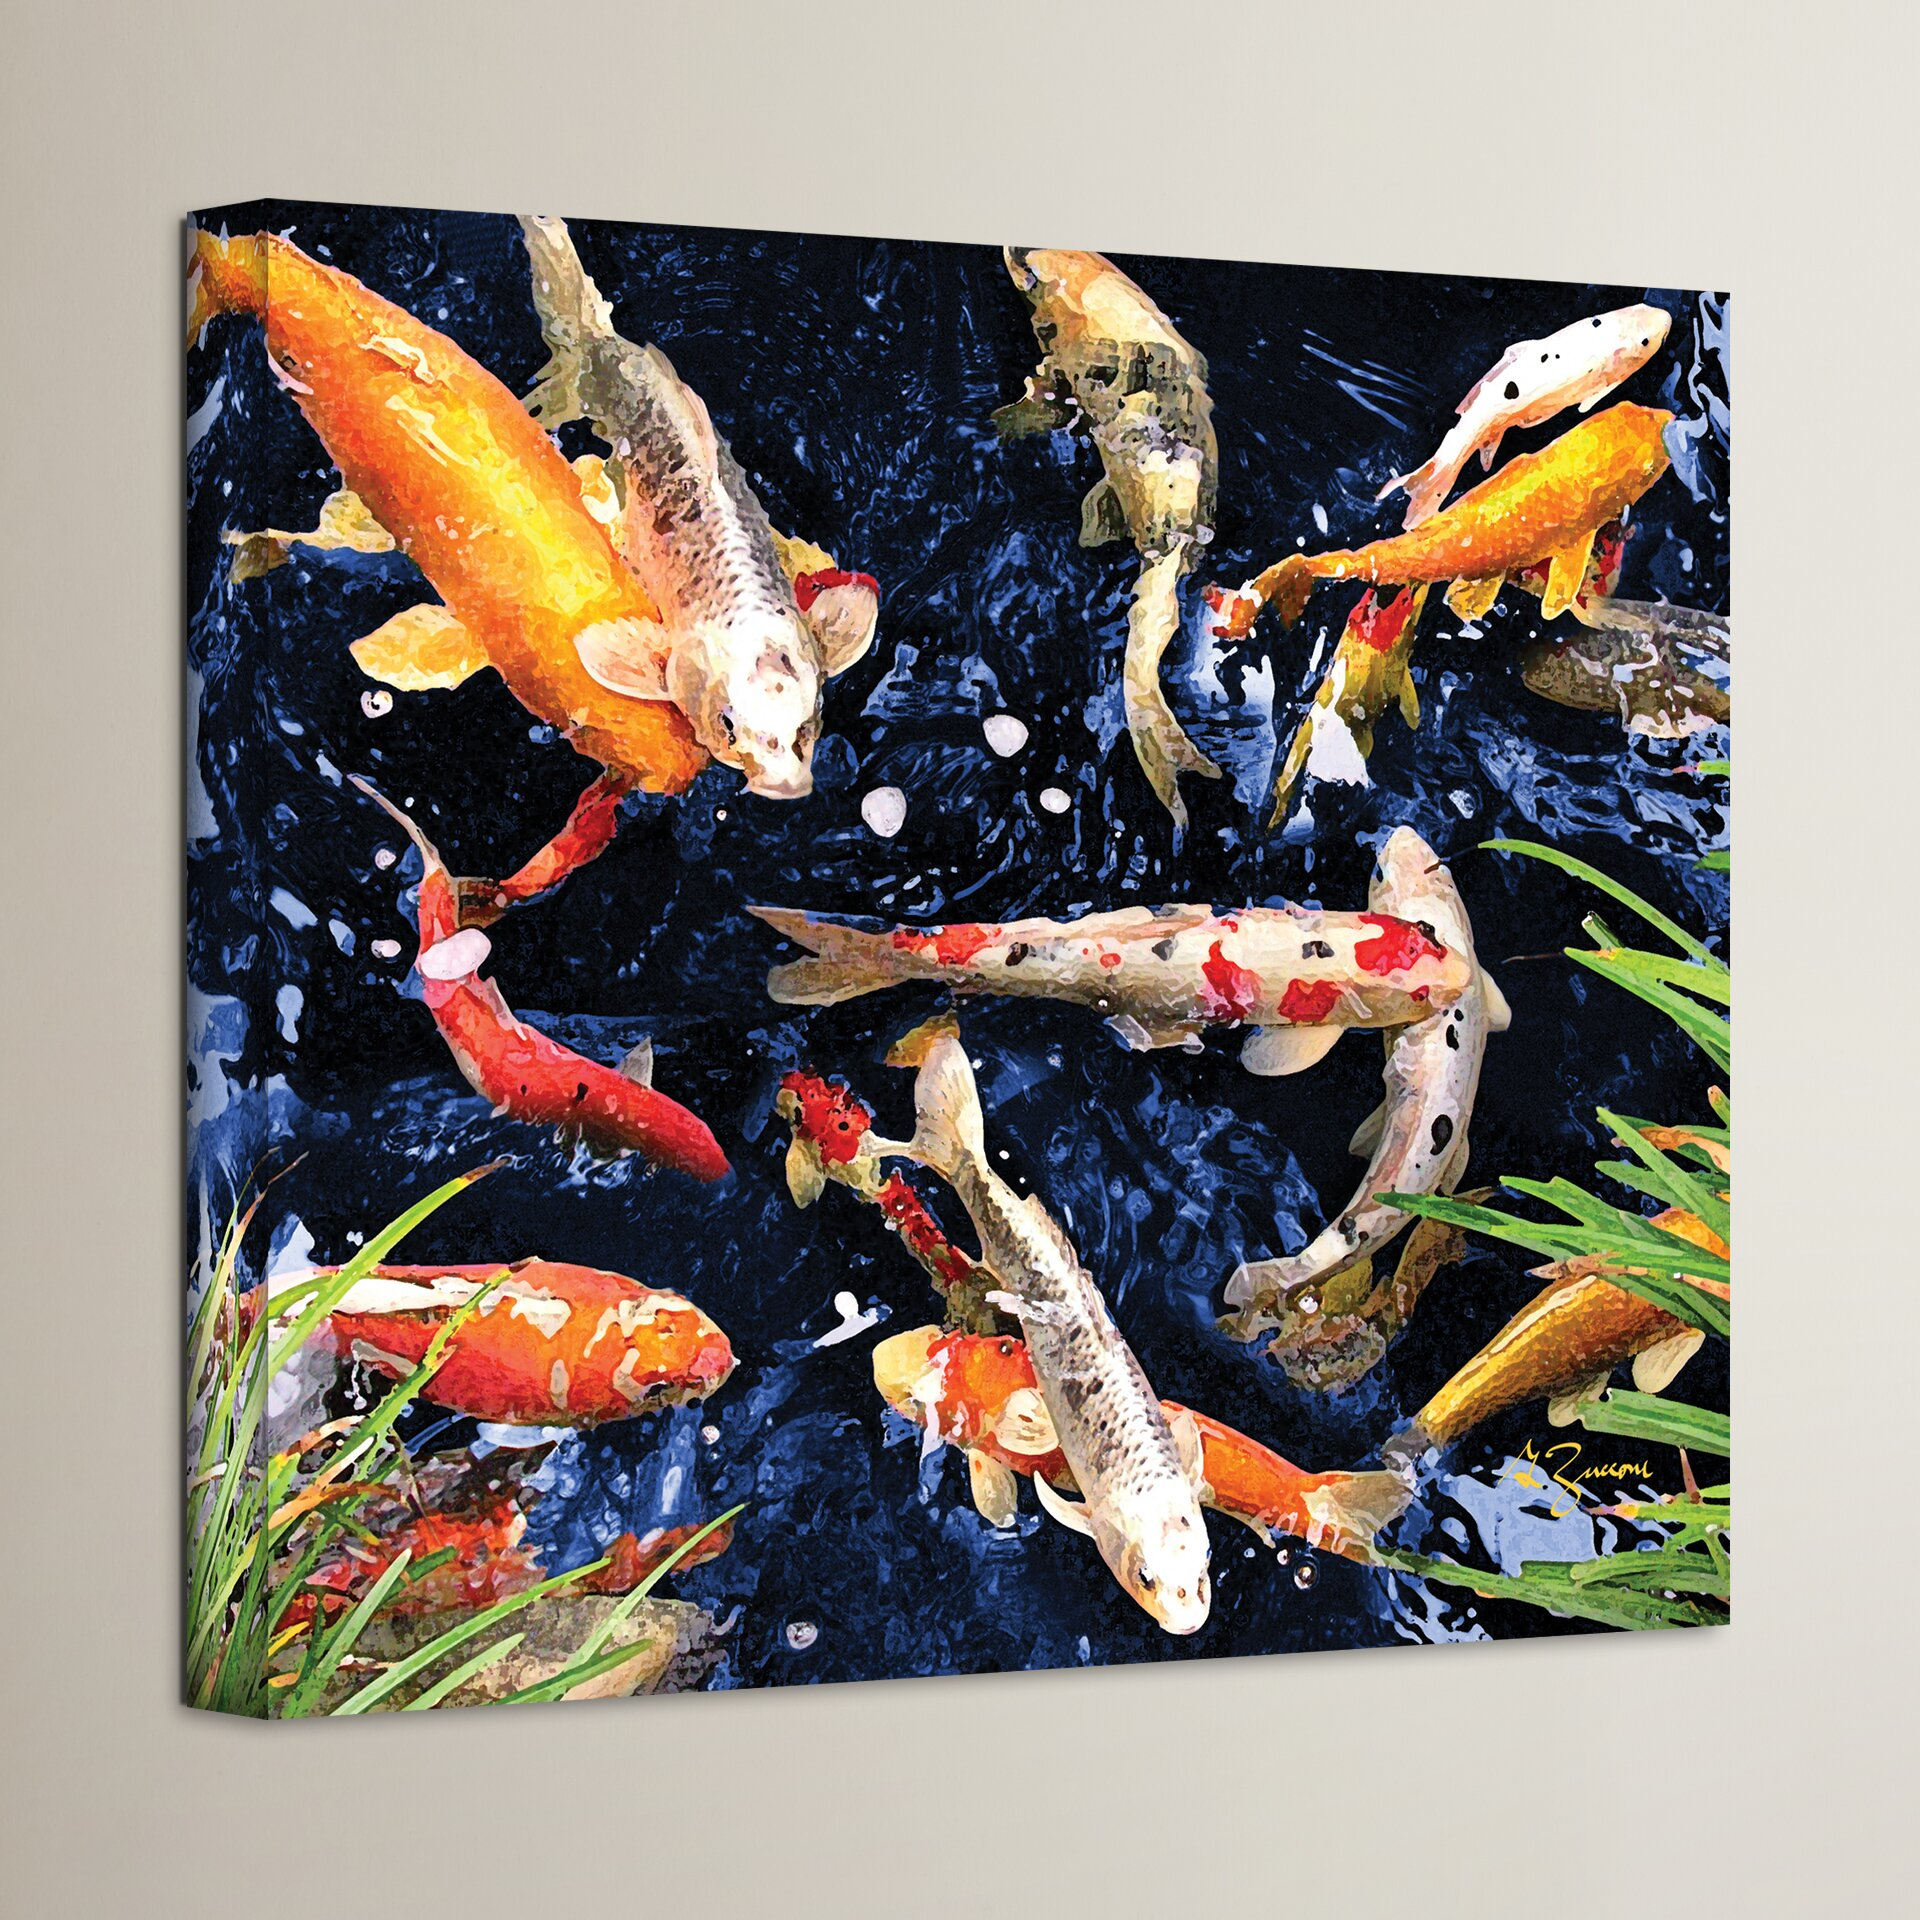 Bay isle home koi painting print on canvas reviews wayfair for Koi prints canvas